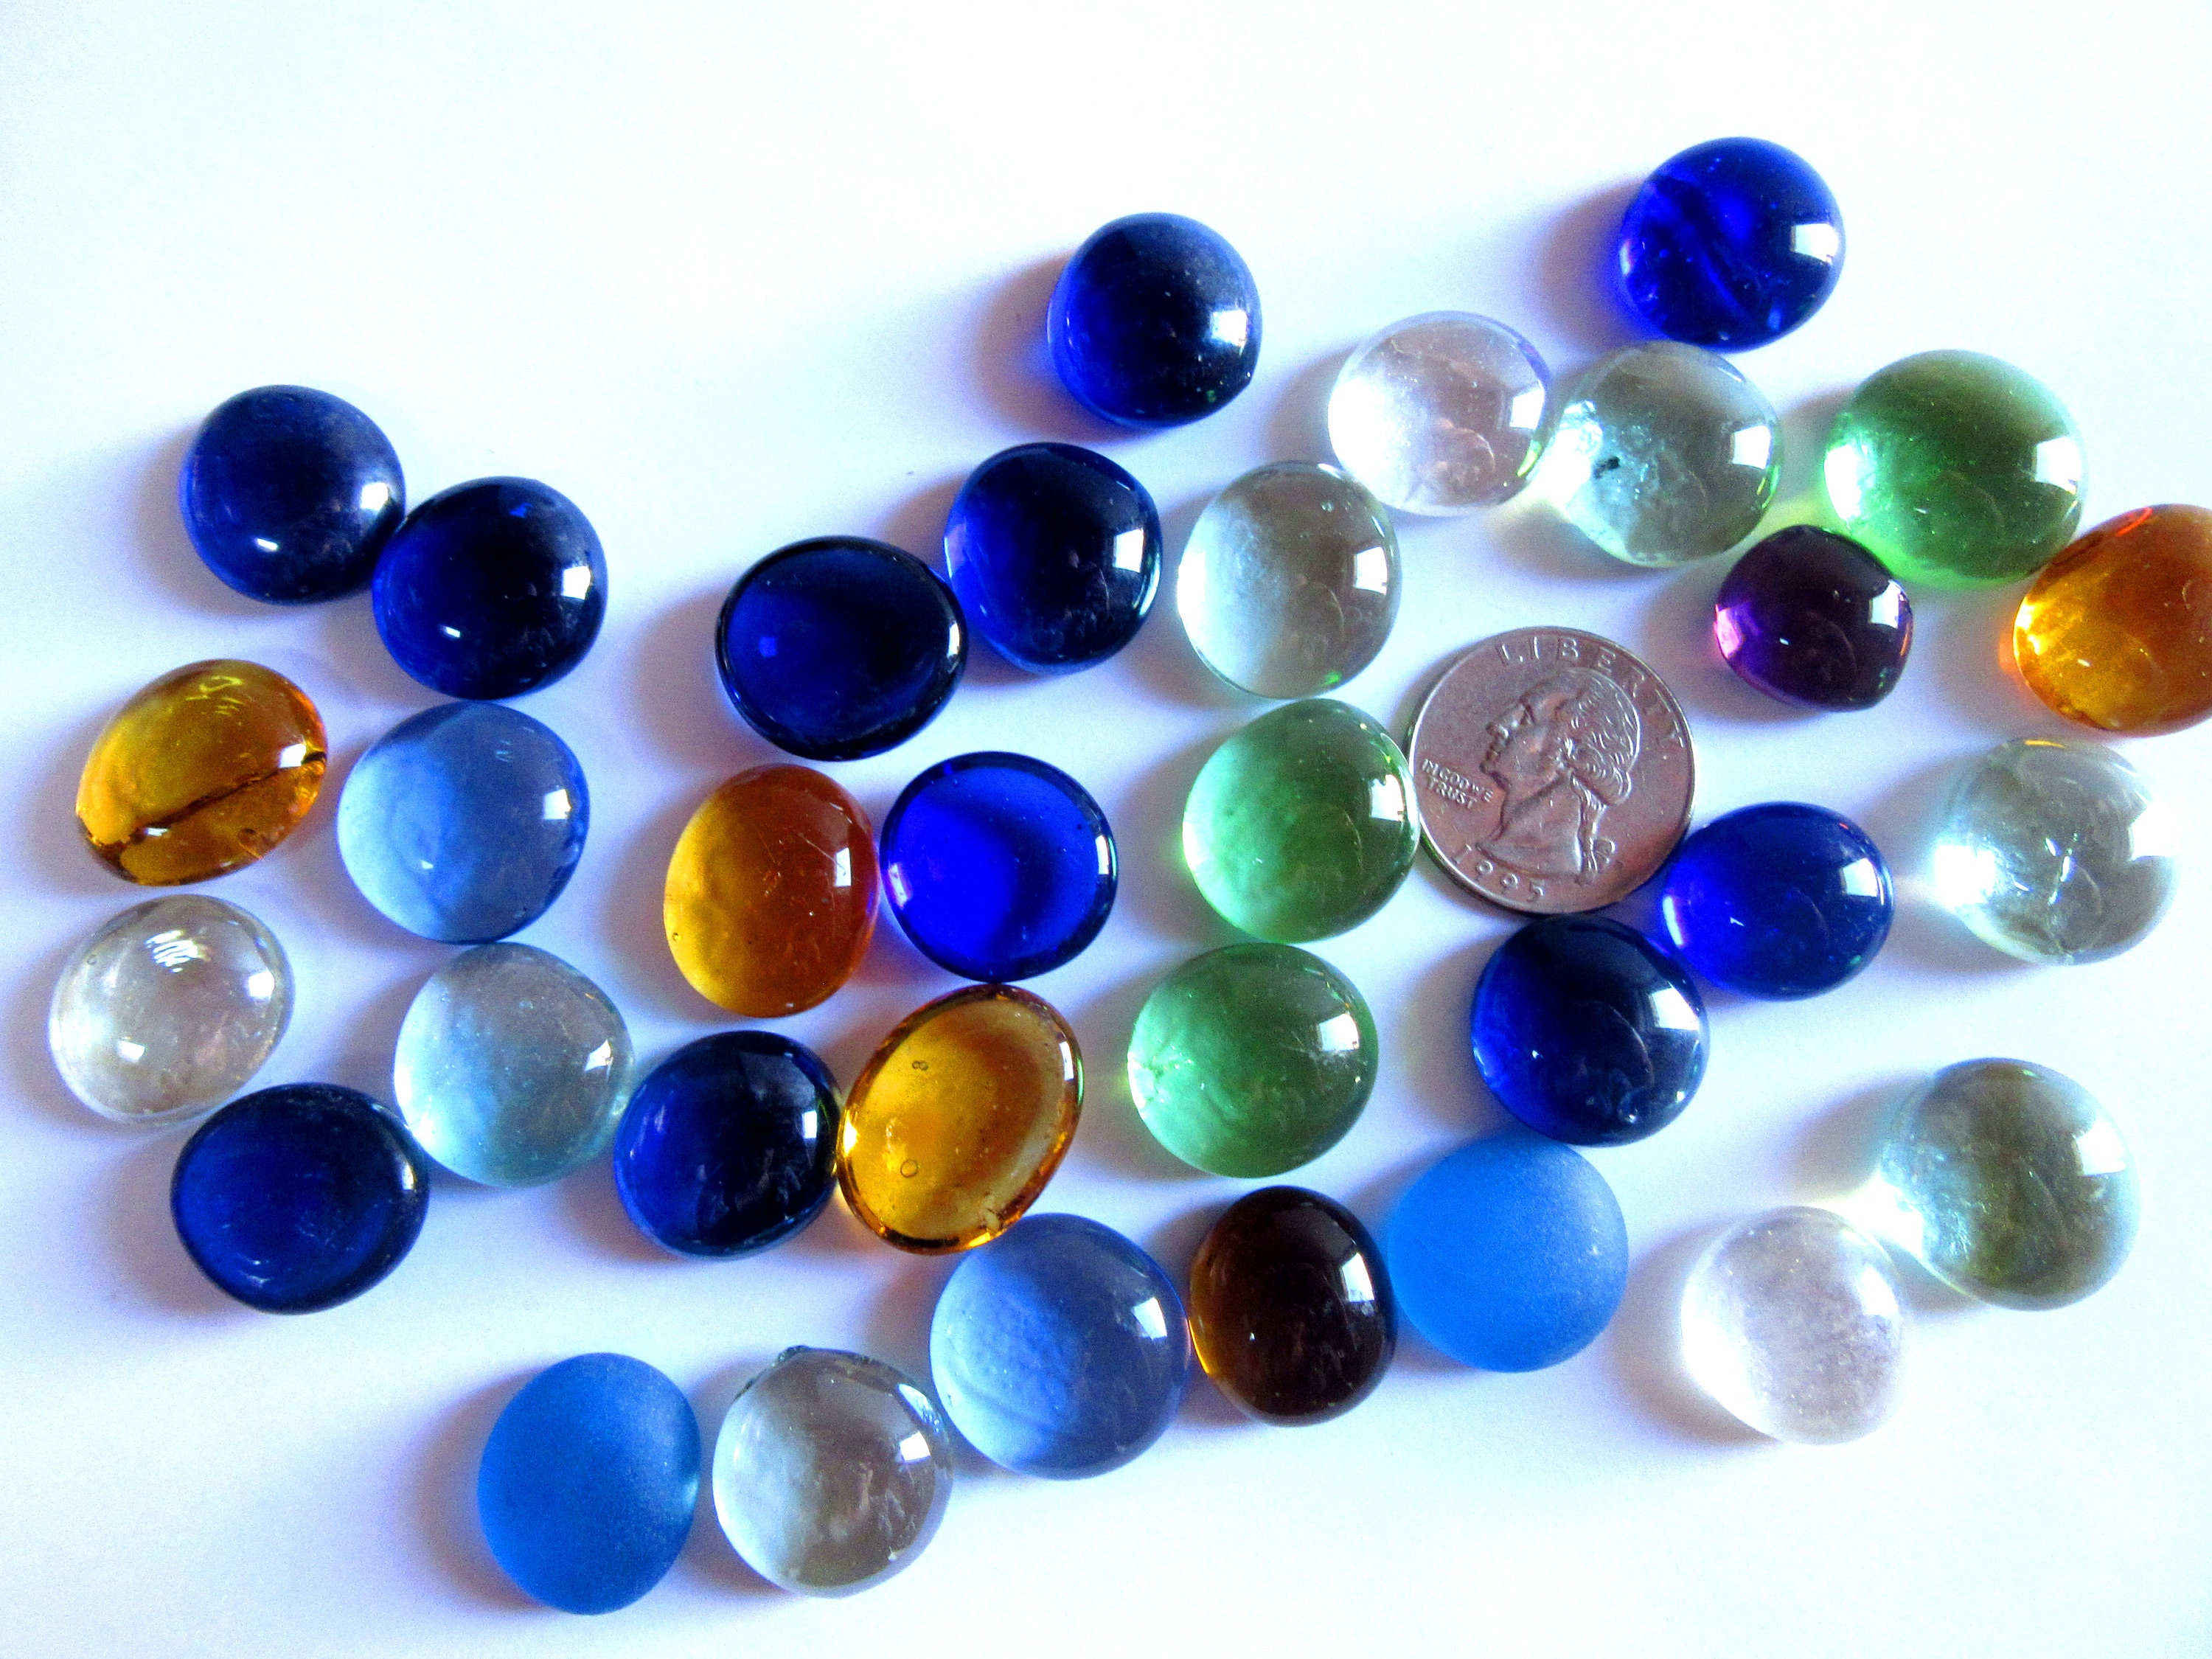 50 colorful glass gems glass flat marbles round mosaic tiles 50 colorful glass gems glass flat marbles round mosaic tiles round glass pieces vase fillers decor marbles glass cabochons glass mix reviewsmspy